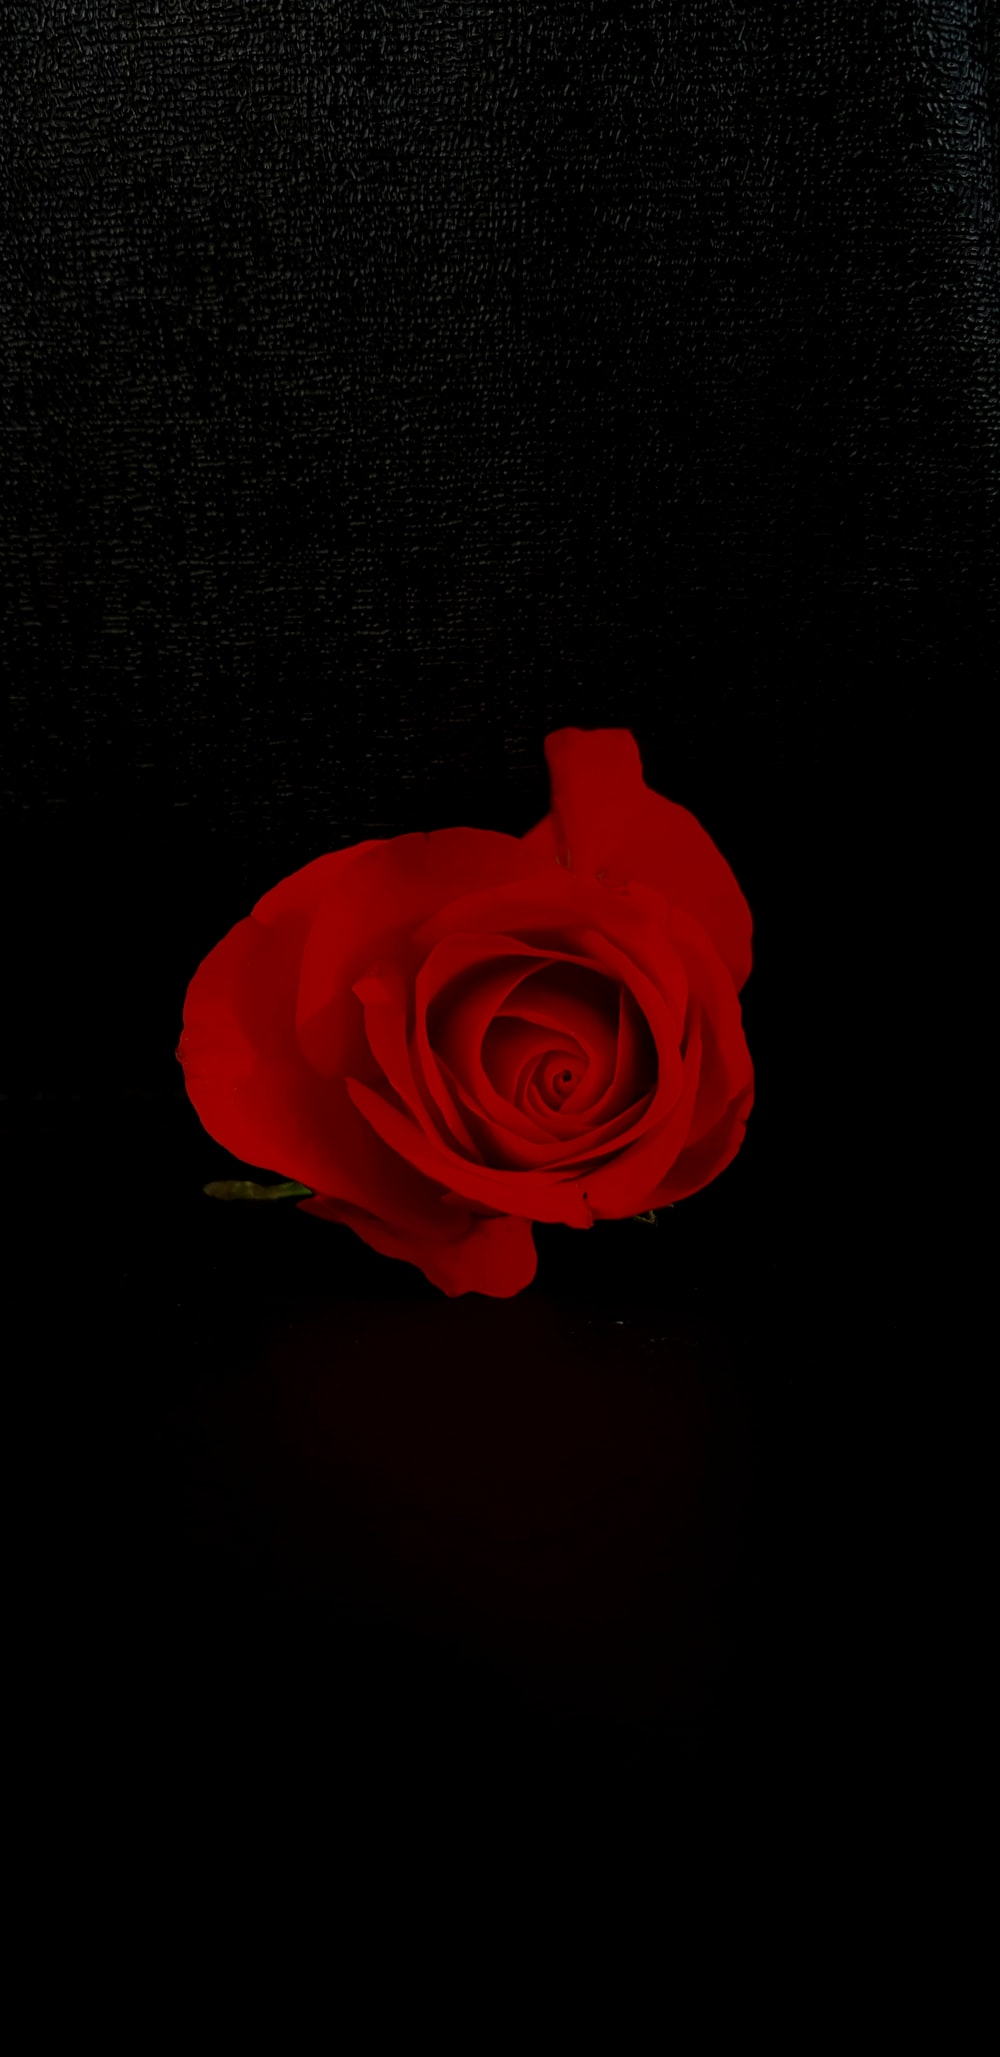 red rose flower on black background